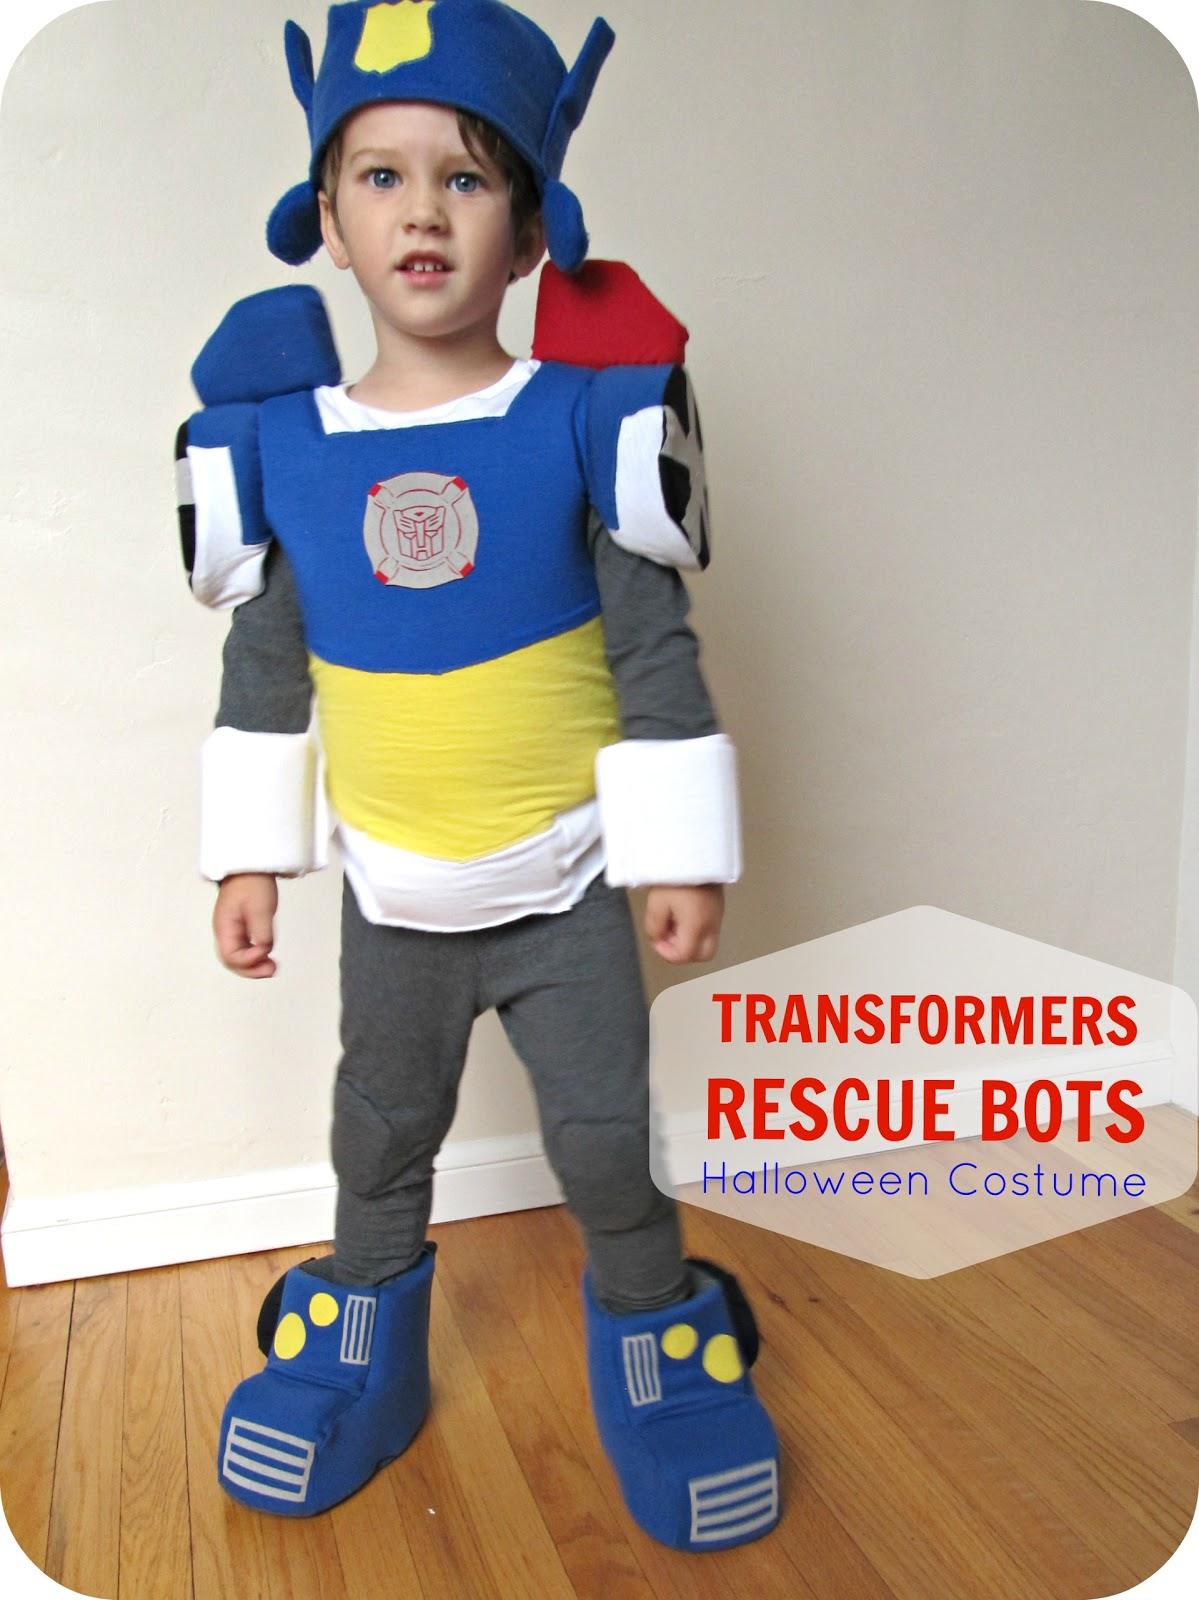 Comfy dress up transformers halloween costume home made by jill 2013 ive seen some pretty amazing diy transformers costumes online from the incredibly detailed to the ones that actually transform what solutioingenieria Choice Image